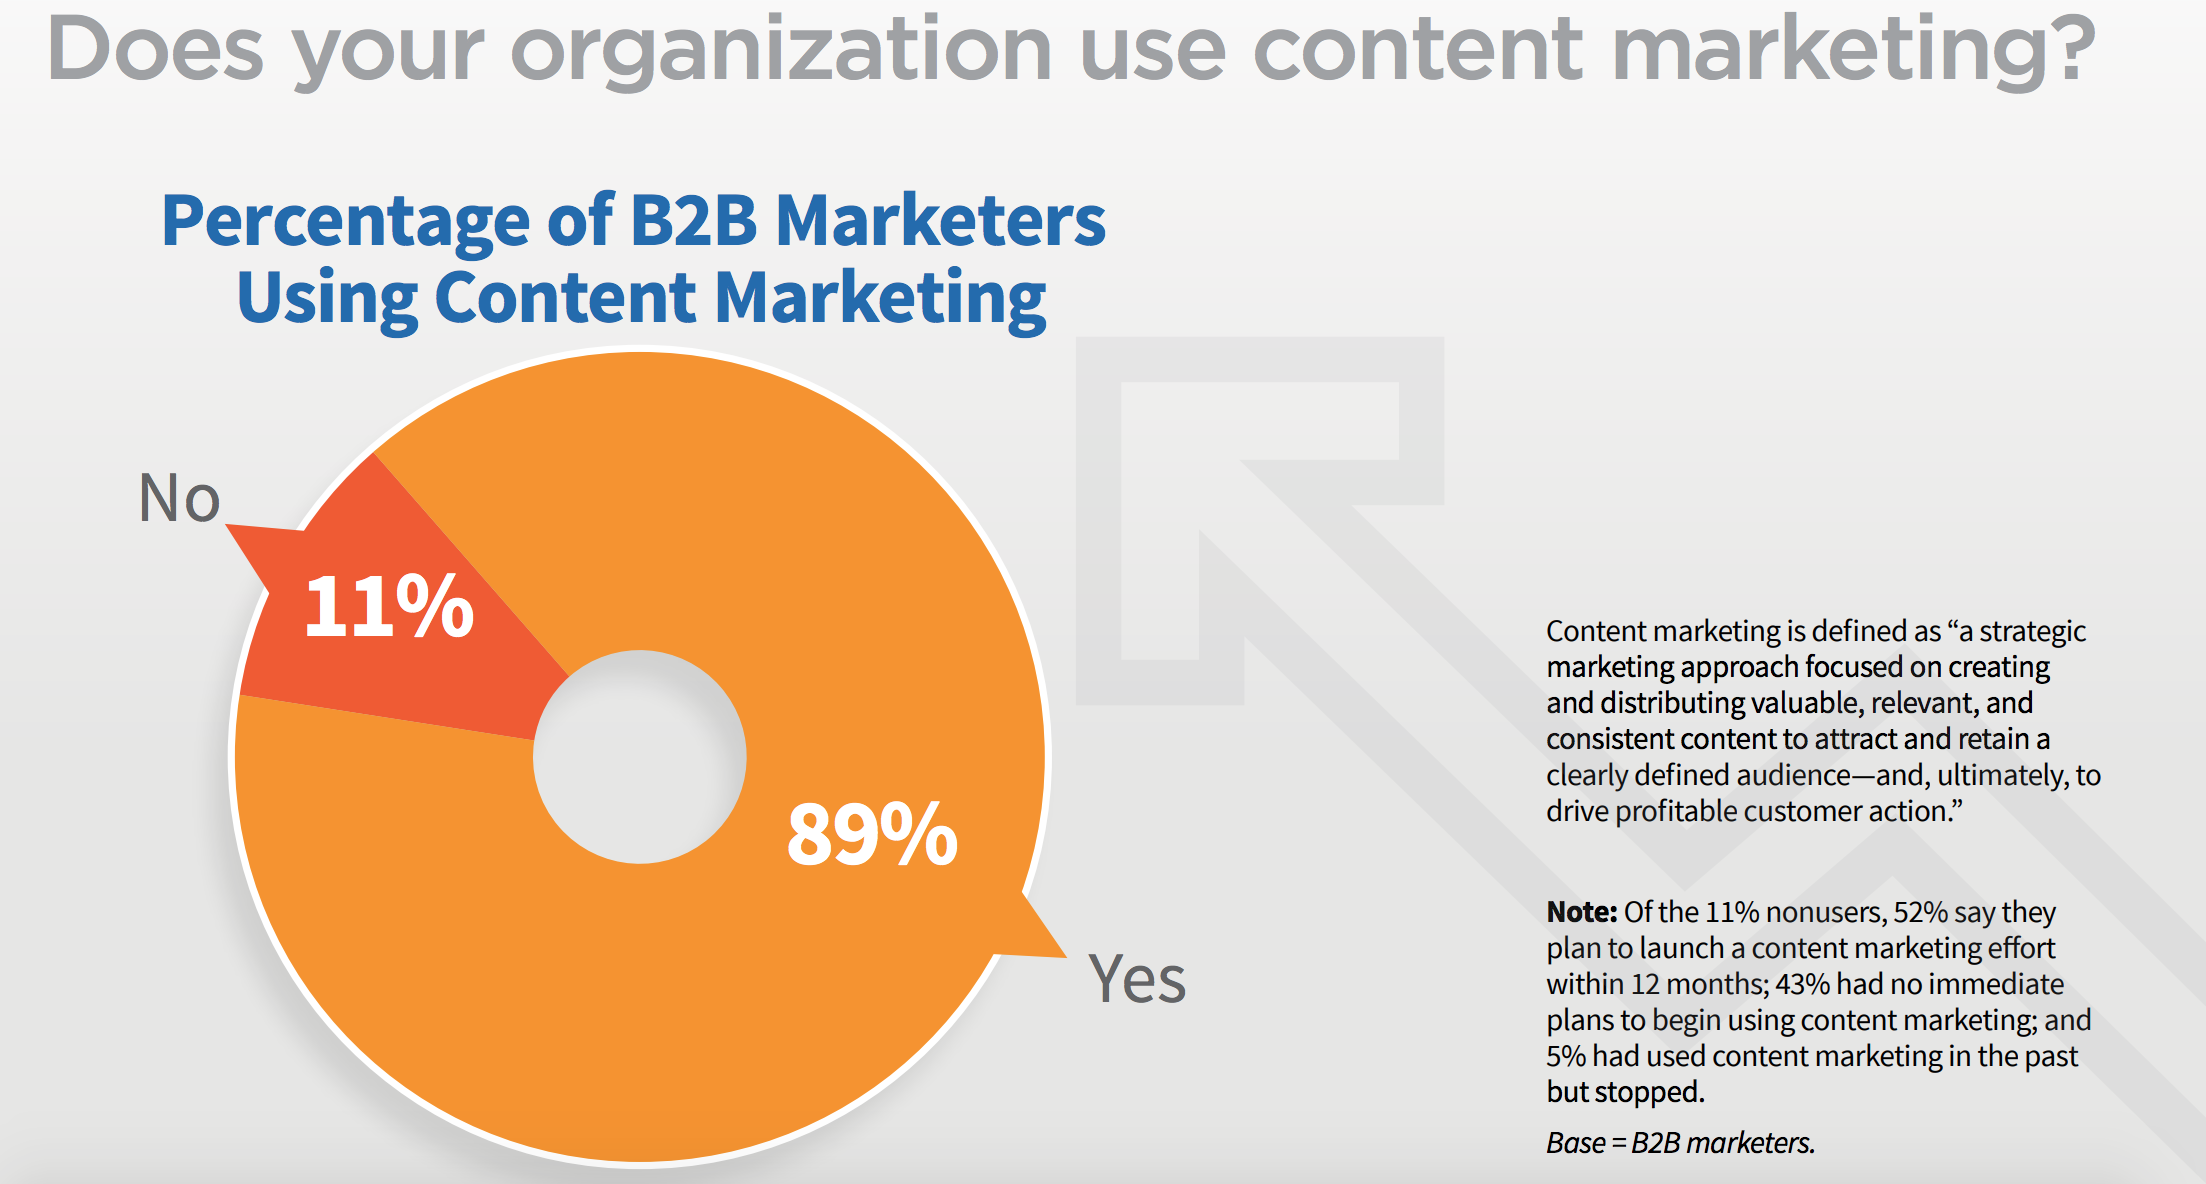 Does your organization use content marketing?